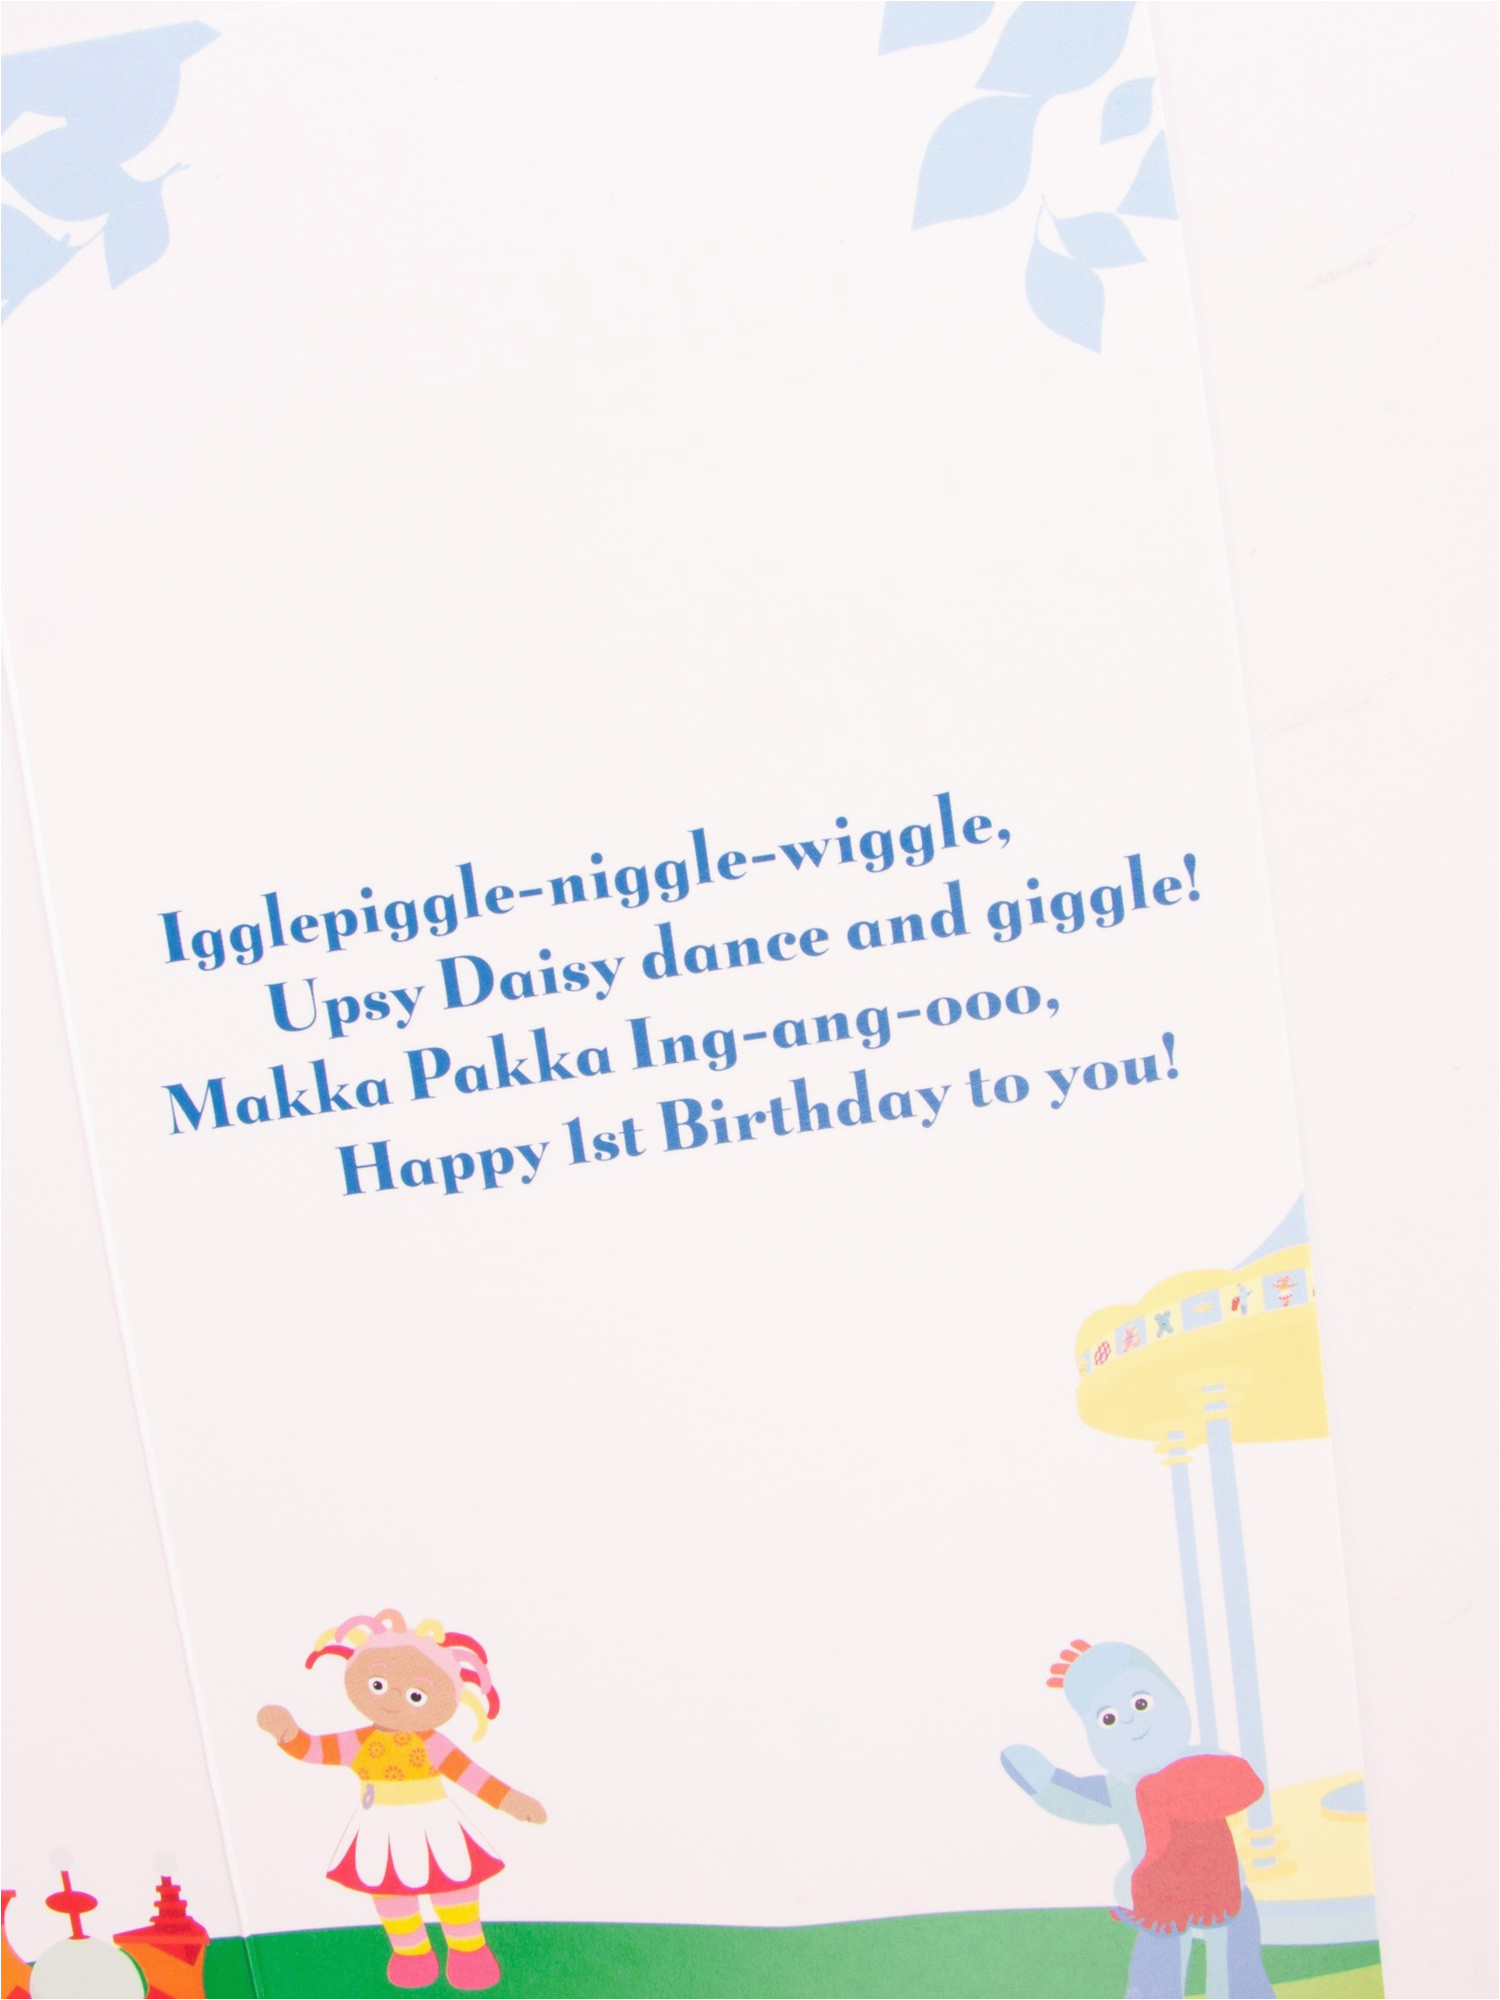 Friendship Verses For Birthday Cards Christian Quotes Friends Quotesgram